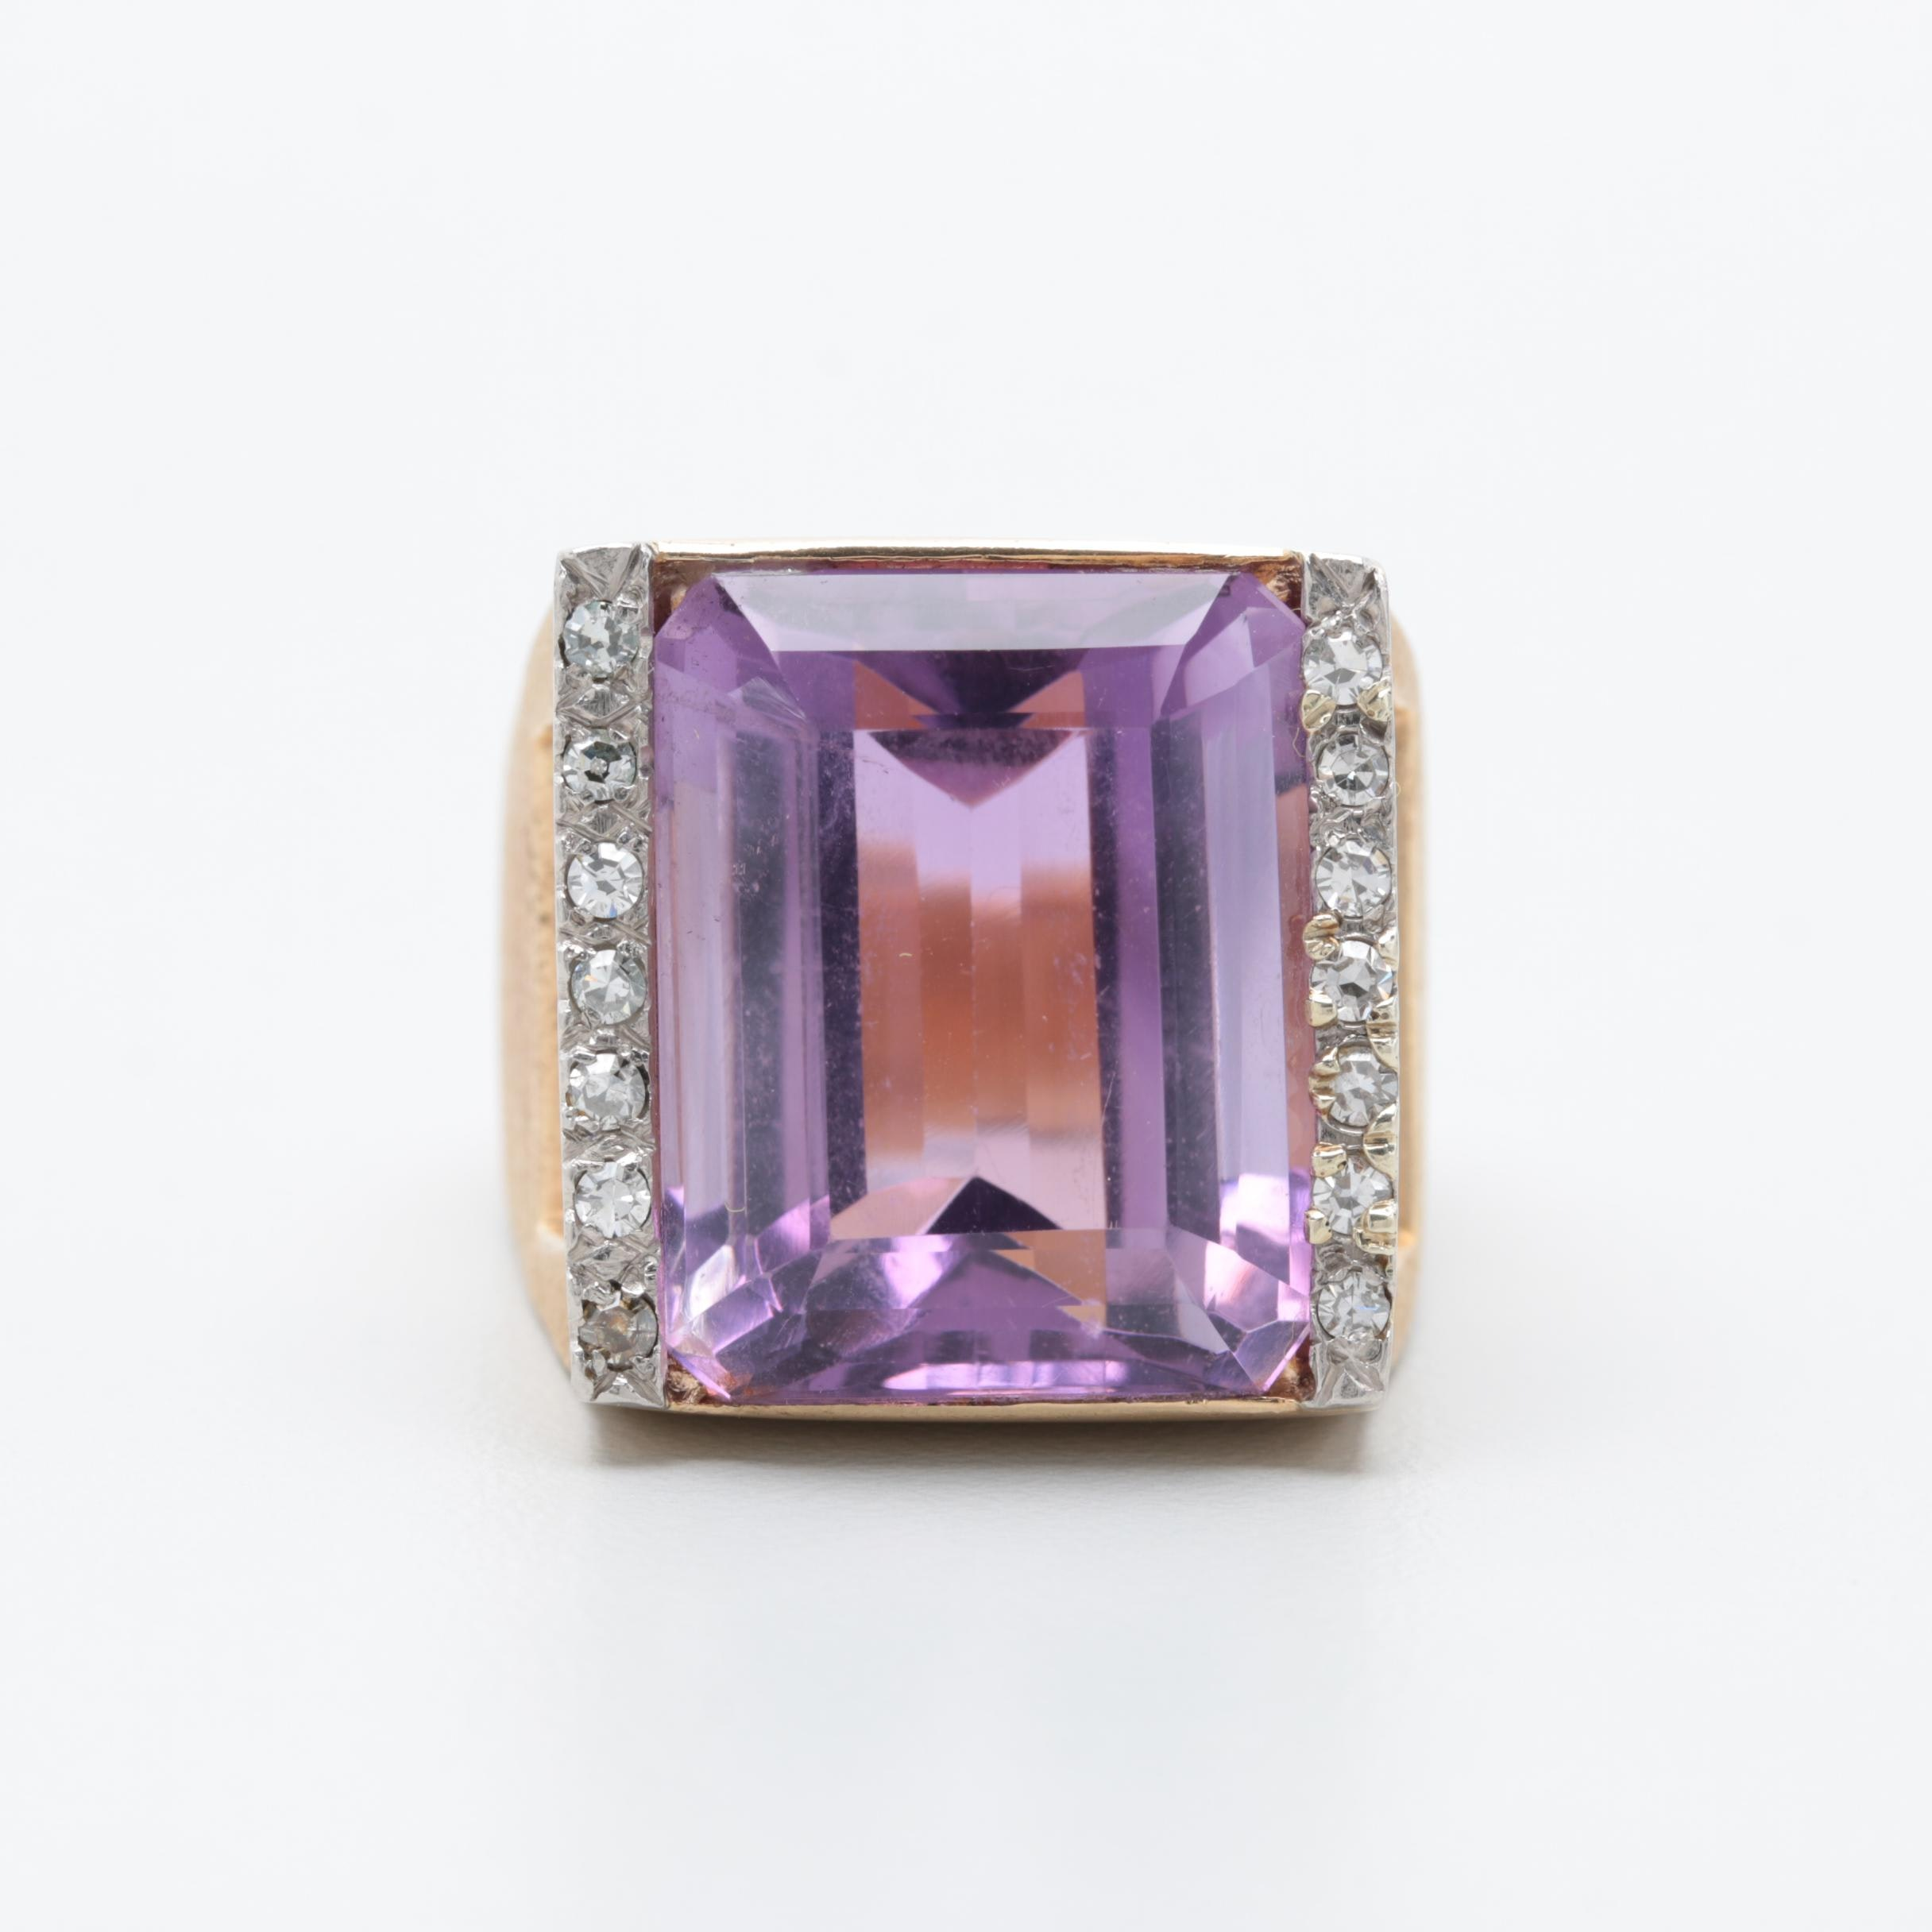 14K Yellow Gold Amethyst and Diamond Cocktail Ring with Palladium Accents